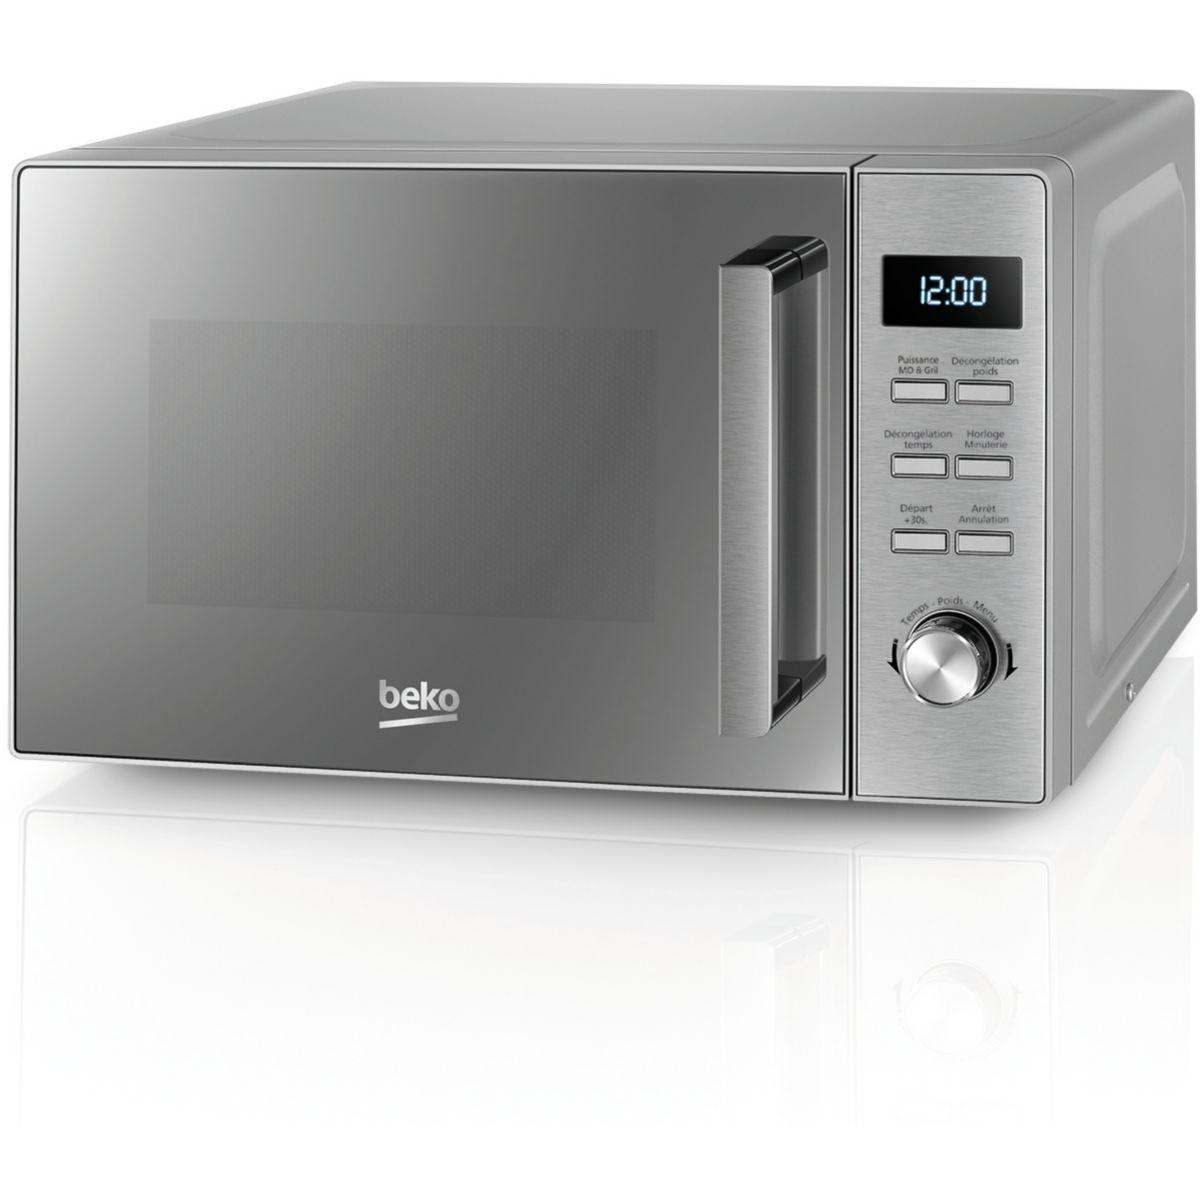 Micro-ondes grill four beko mgf20210x - 2% de remise : code gam2